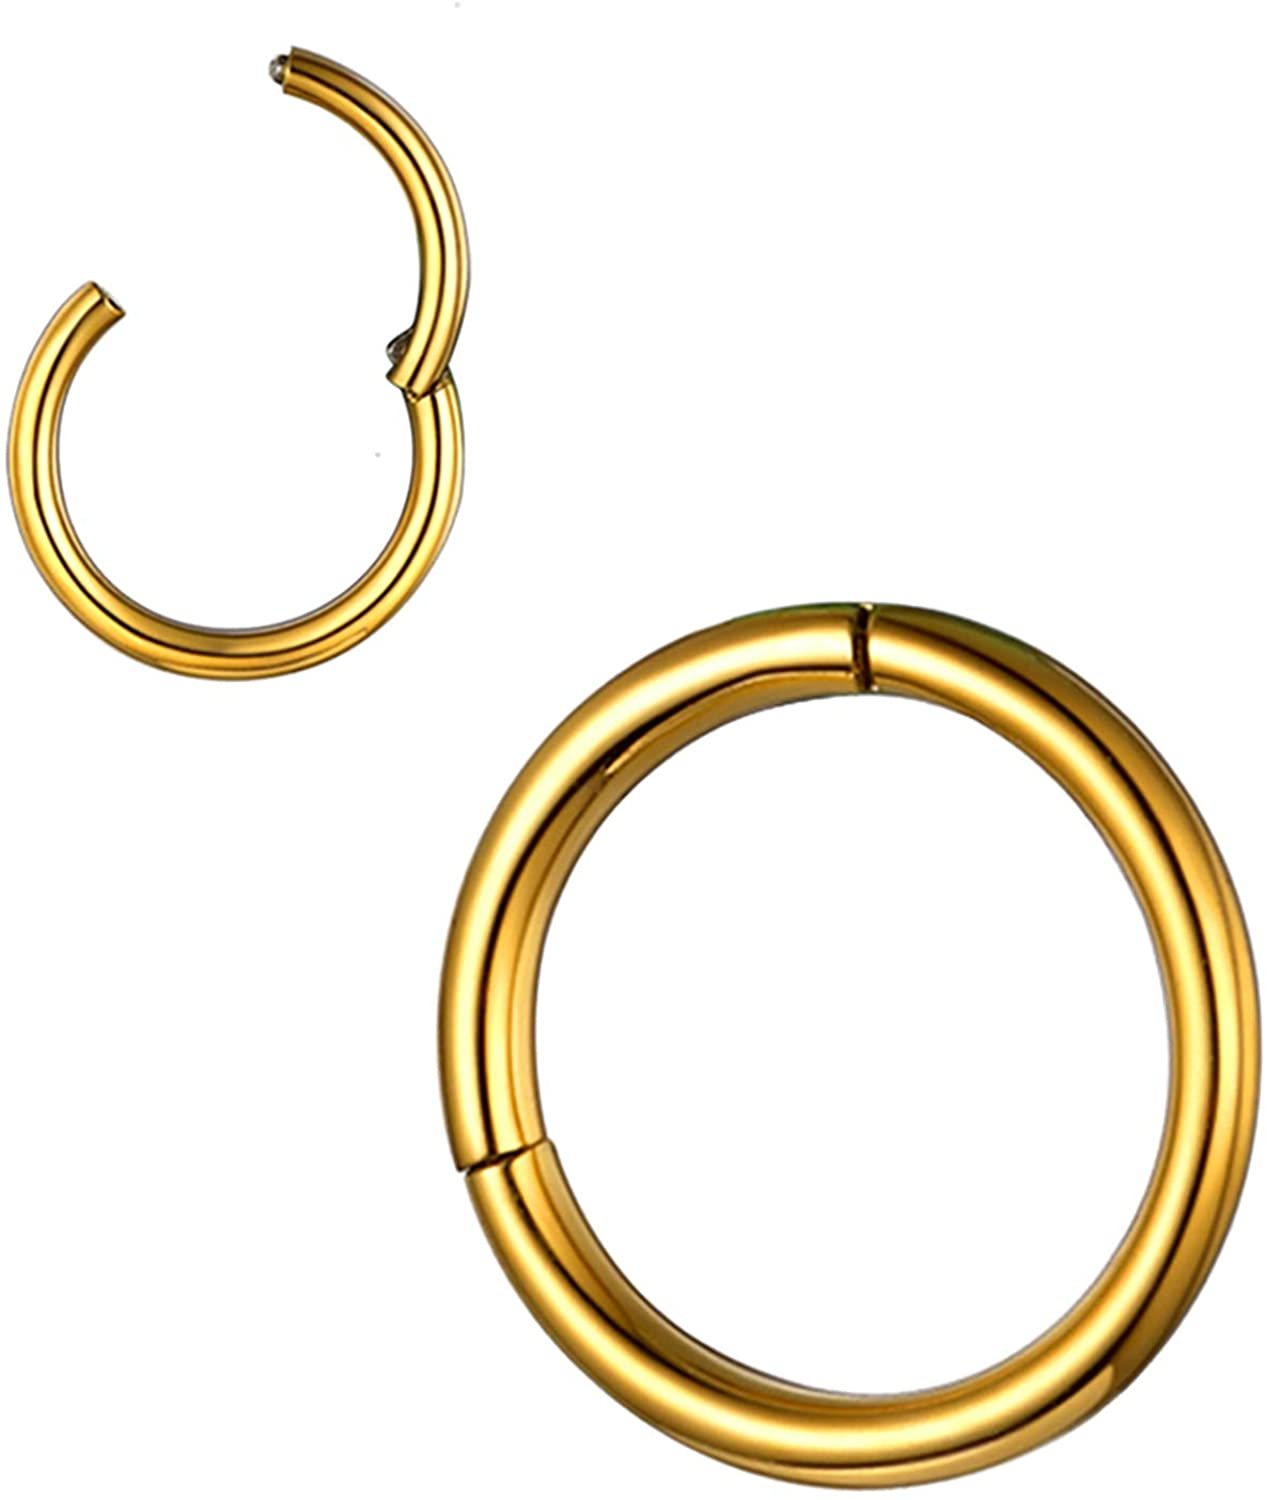 U7 Nose Rings for Men Women Surgical Stainless Steel Body Piercing Jewelry Tiny Wrap Hoop Hinged 18G 20G Lip Earring Nostril Nose Ring, Silver Gold Rose Gold Color 1-3 Pcs